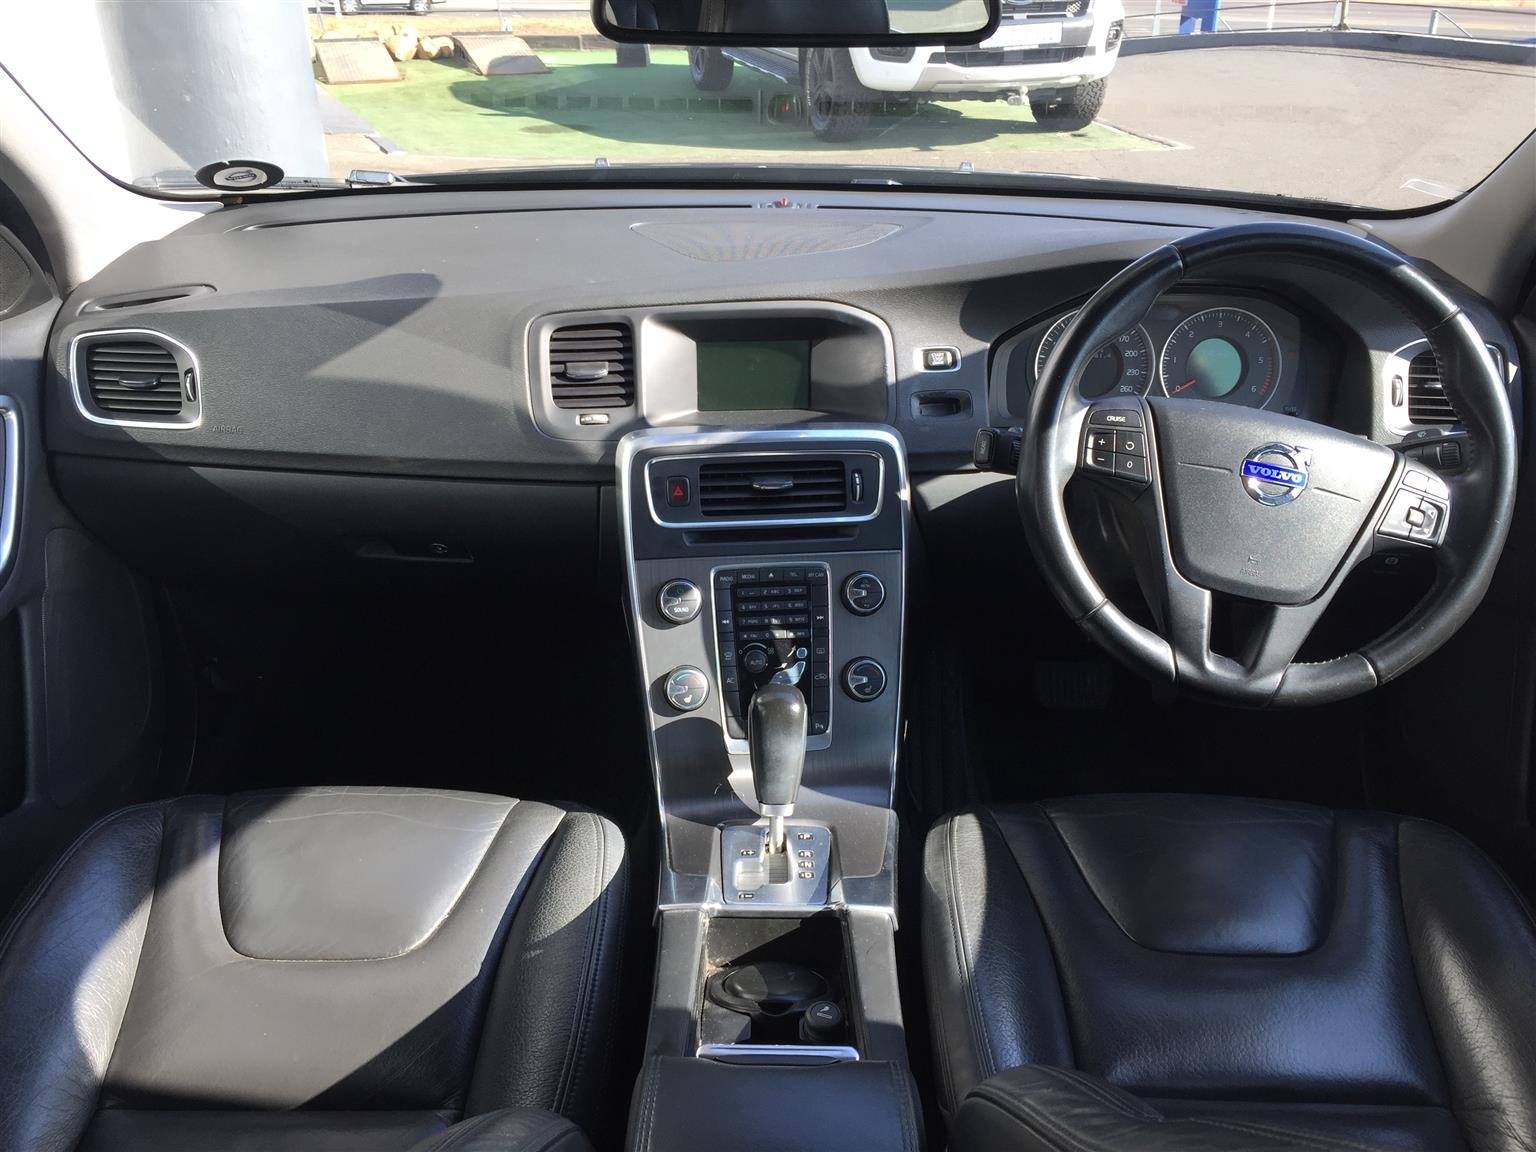 2011 Volvo S60 D3 Geartronic | Junk Mail